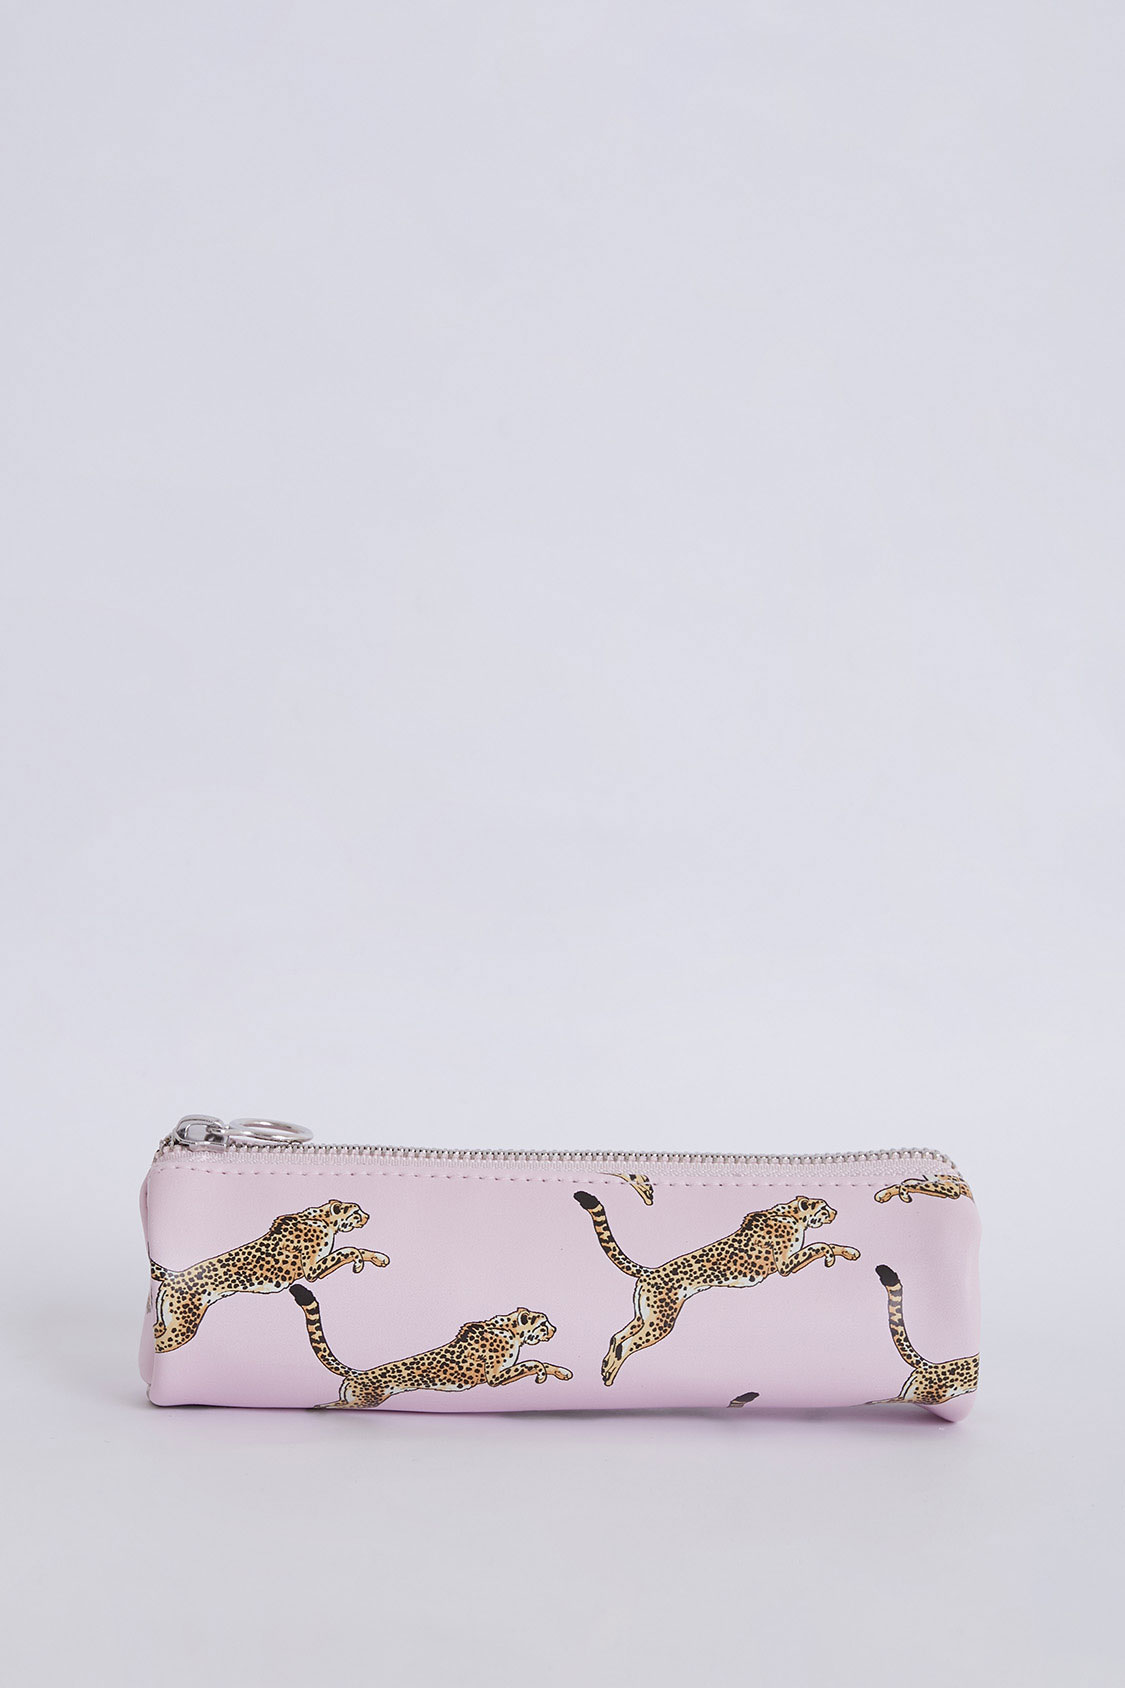 Leopards pencil case